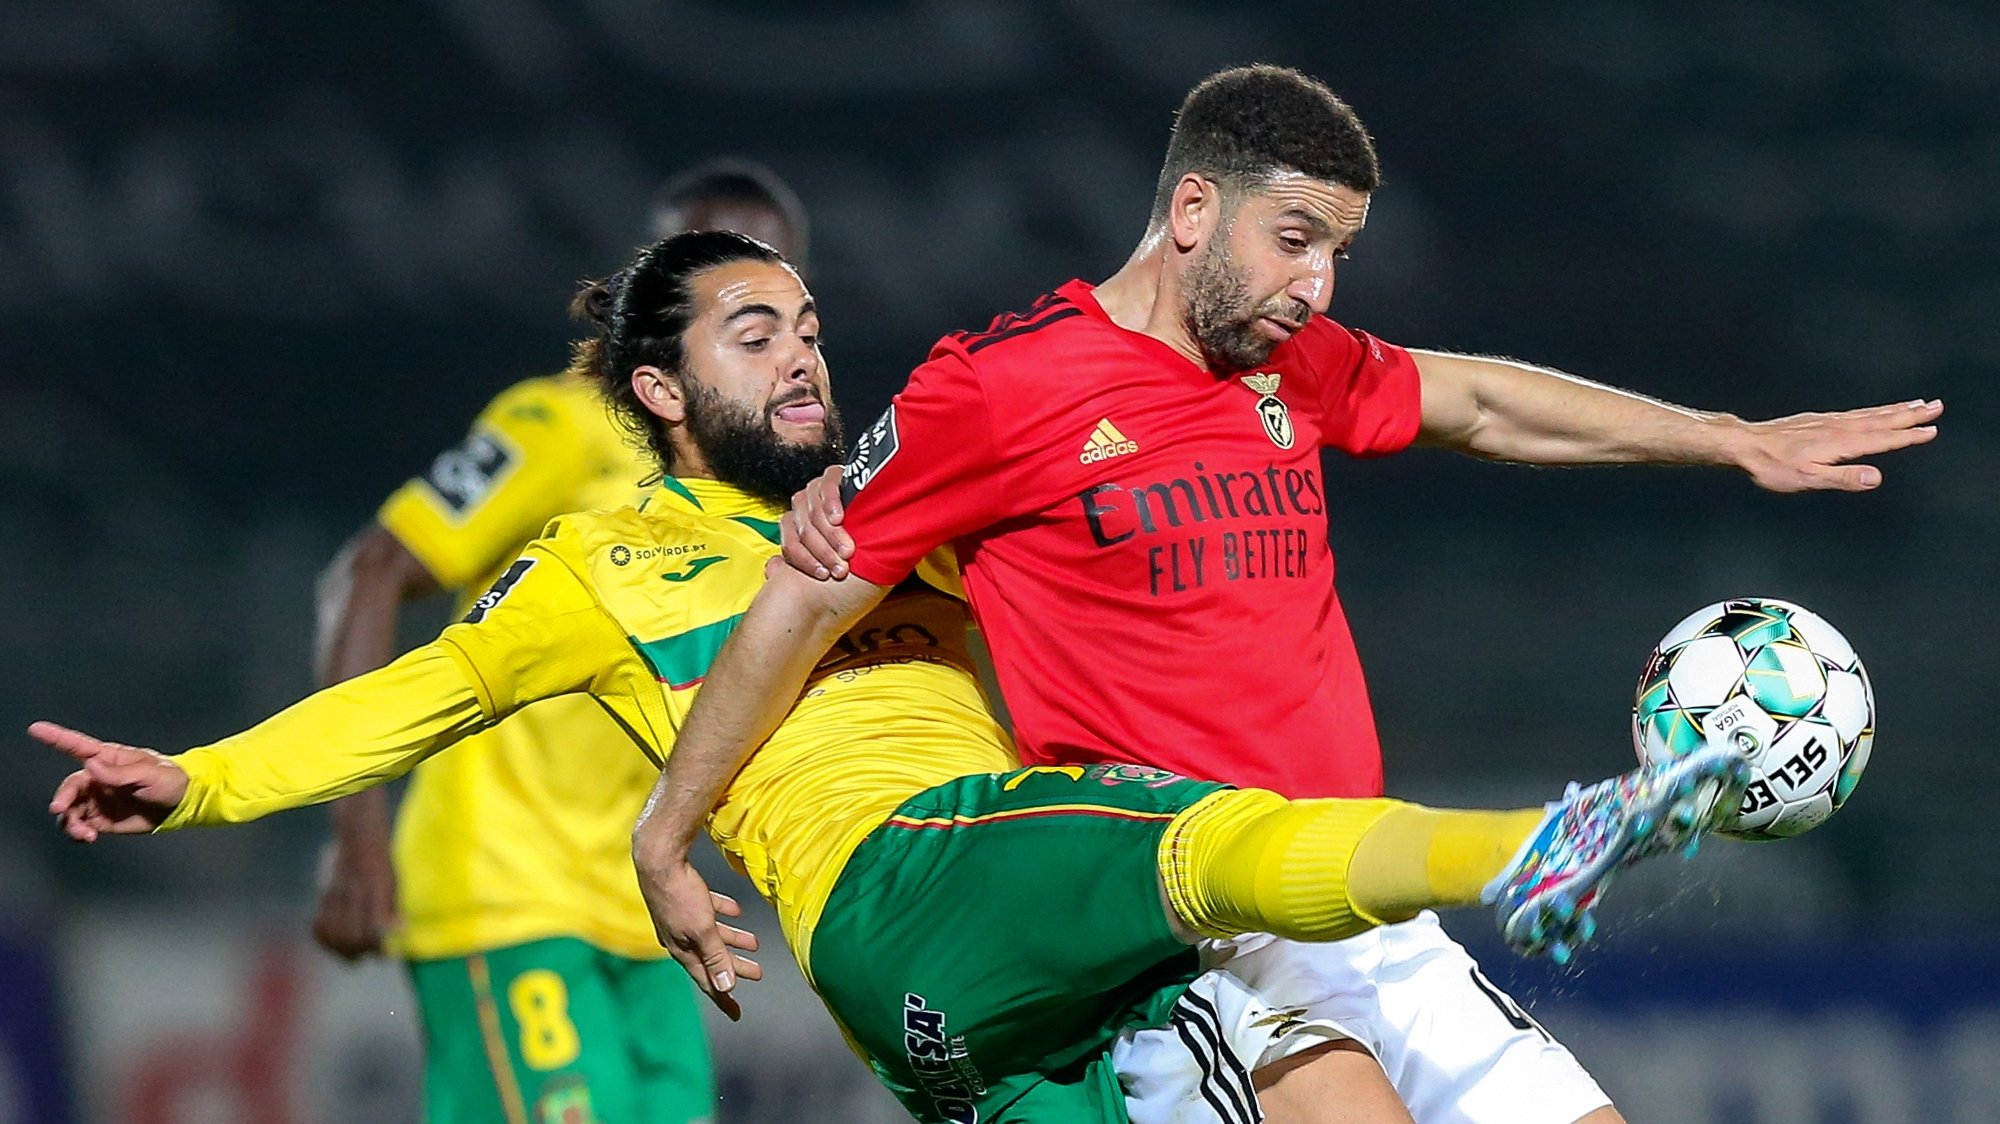 Pacos de Ferreira's Joao Amaral (L) in action against Benfica's Adel Taarabt during their Portuguese First League soccer match held in Pacos de Ferreira, Portugal, 10 April 2021. JOSE COELHO/LUSA